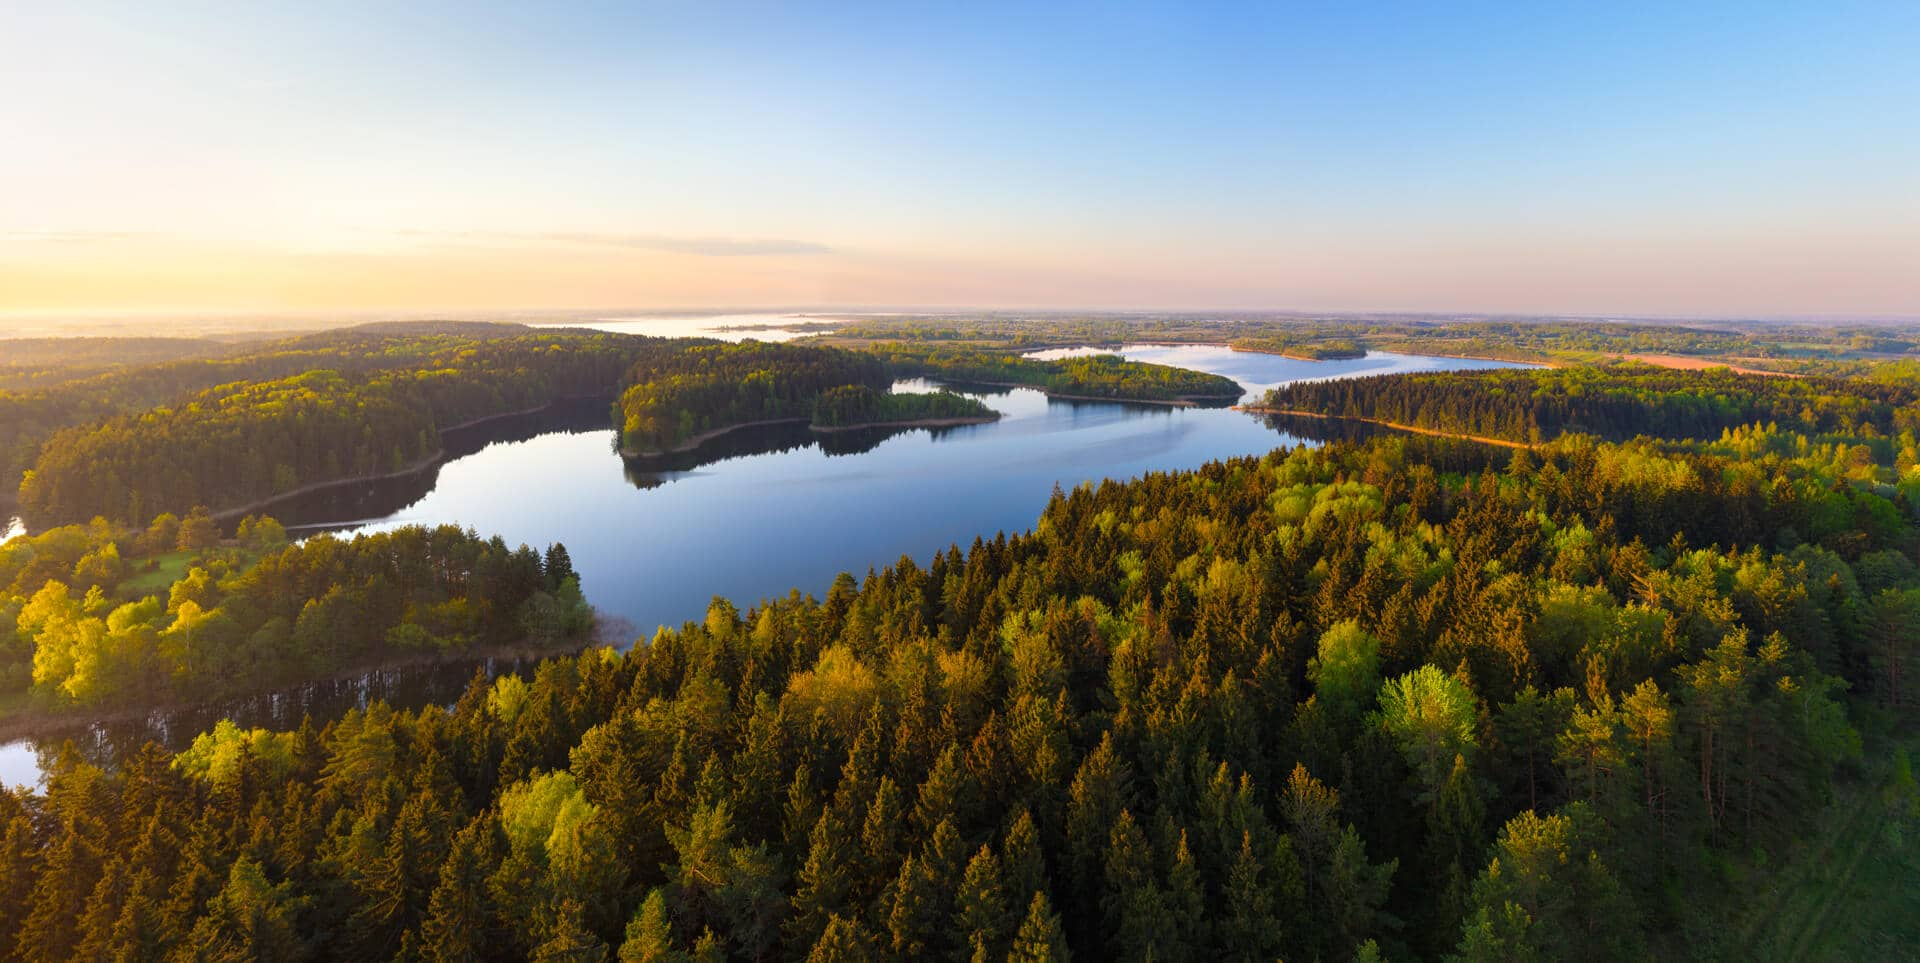 http://visit-belarus.com/wp-content/uploads/2016/07/lakes_and_sunrise_belarus.jpg